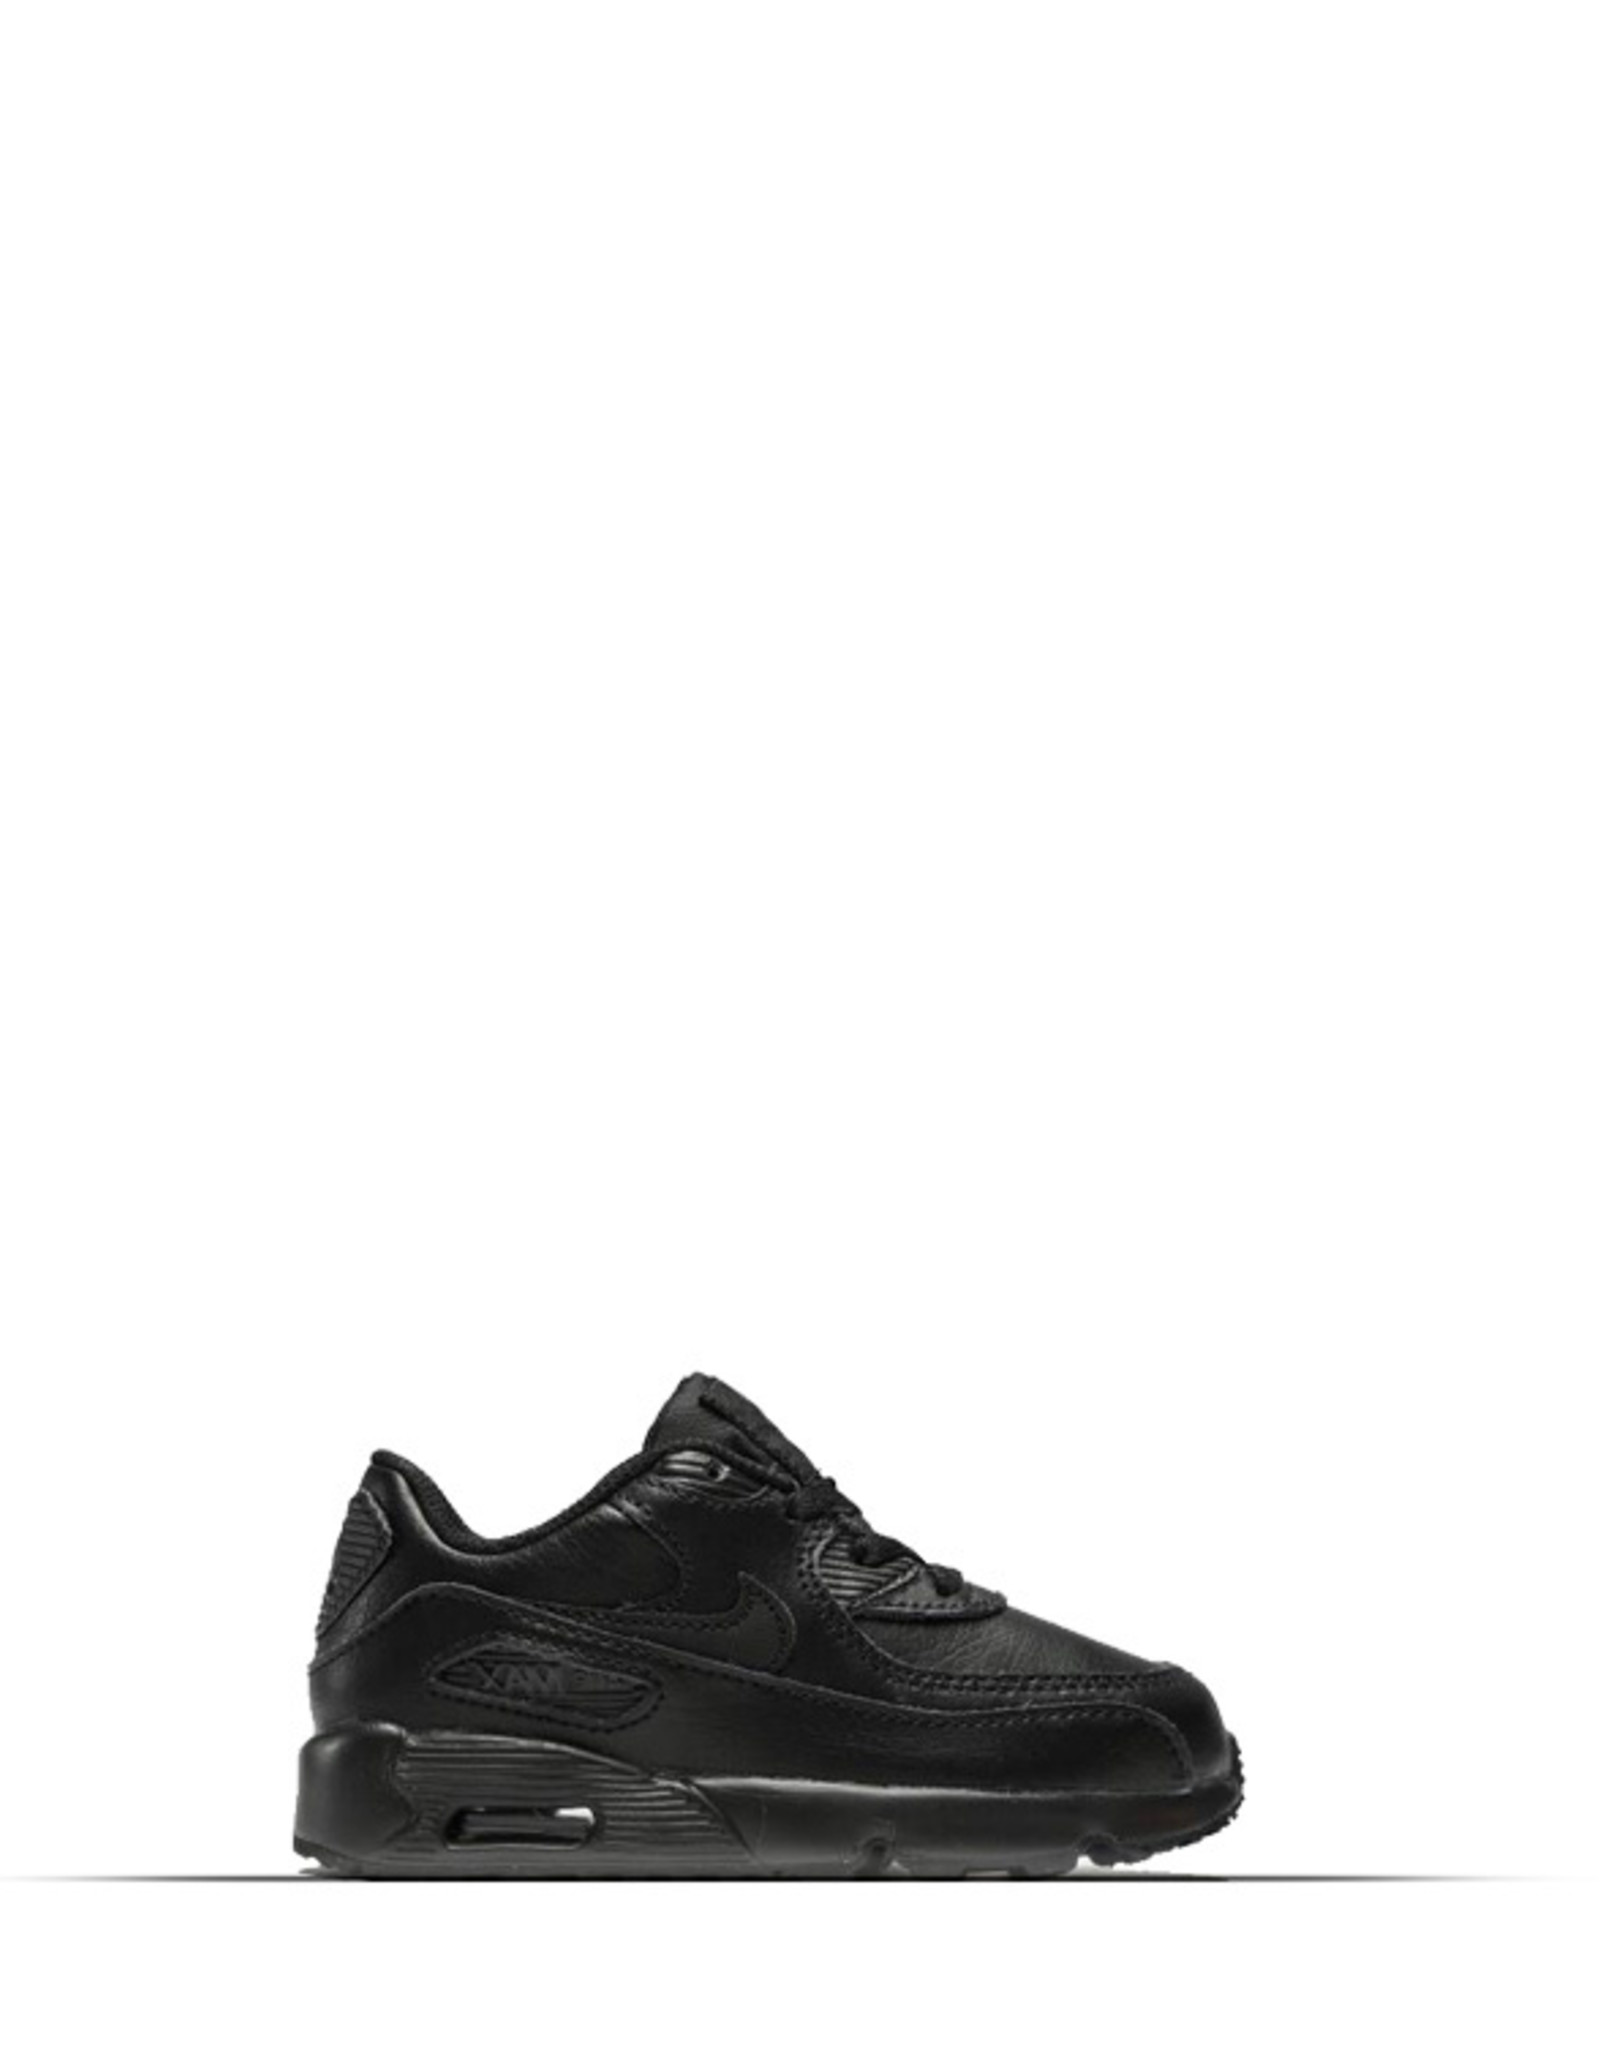 NIKE AIR MAX 90 BLACK LTR BABY